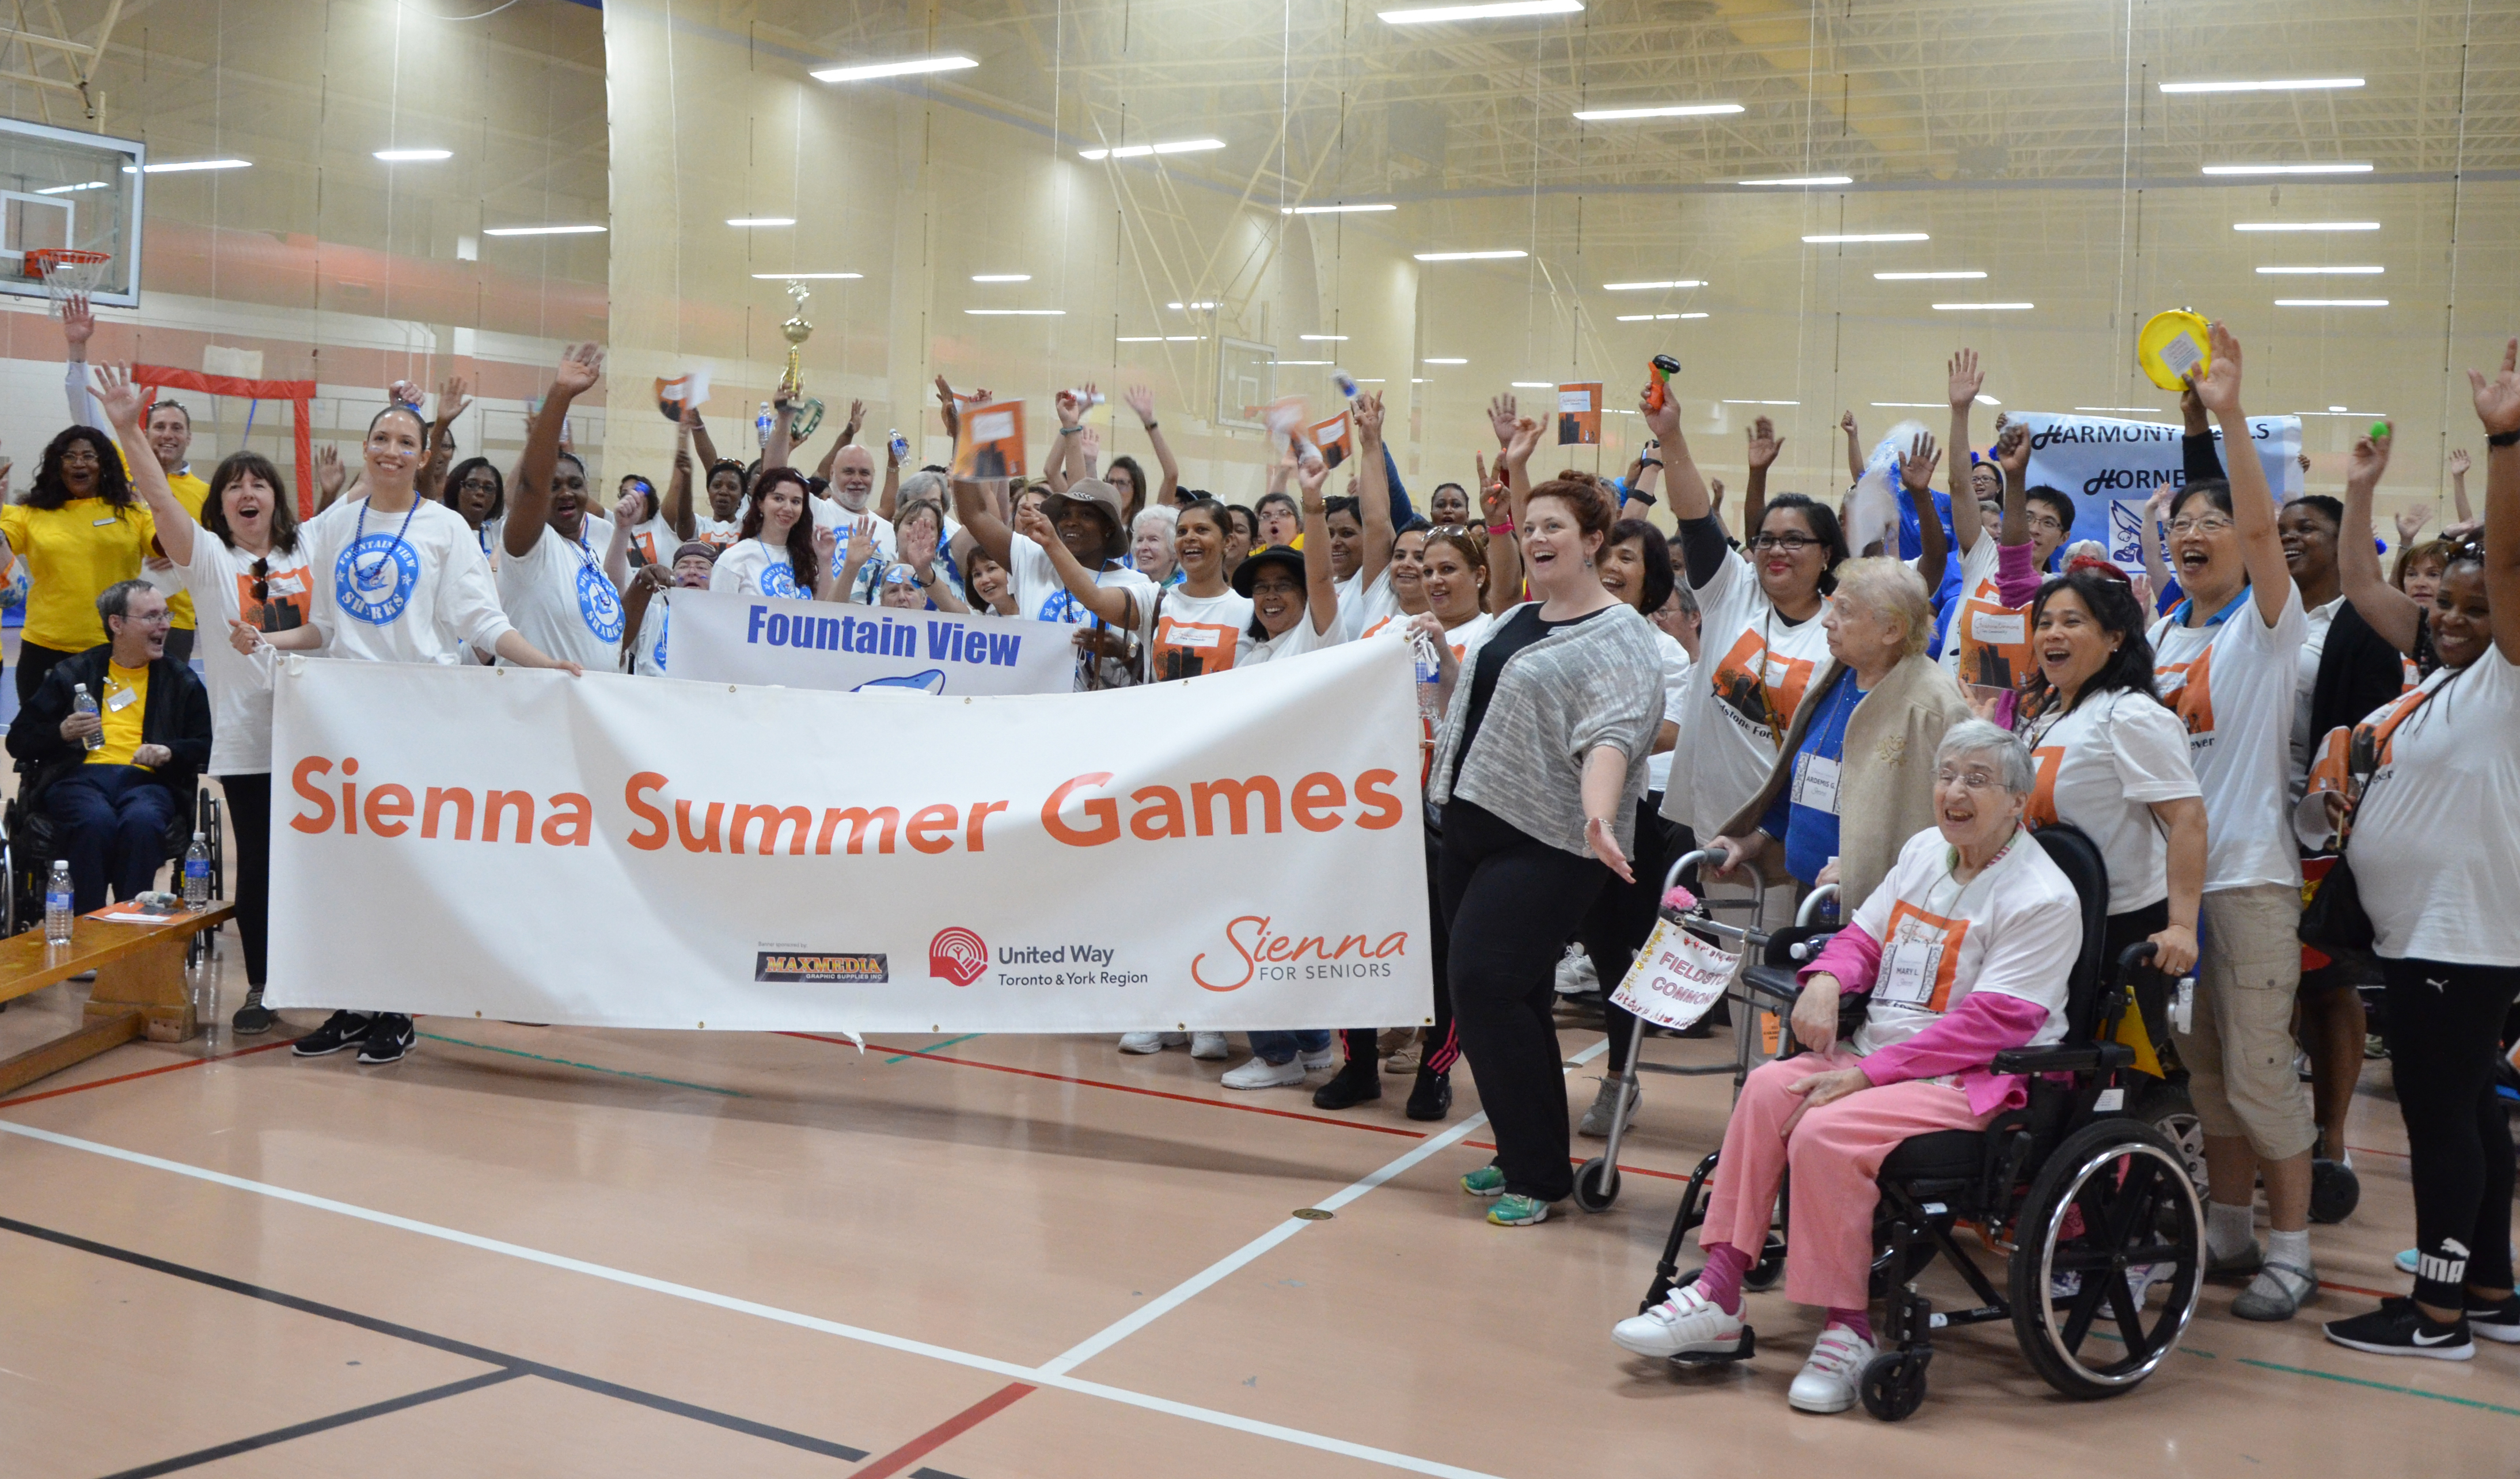 A large group of people, including long-term care residents, staff, and community members are gathered in a gym, holding a large sign that says 'Sienna Summer Games.'